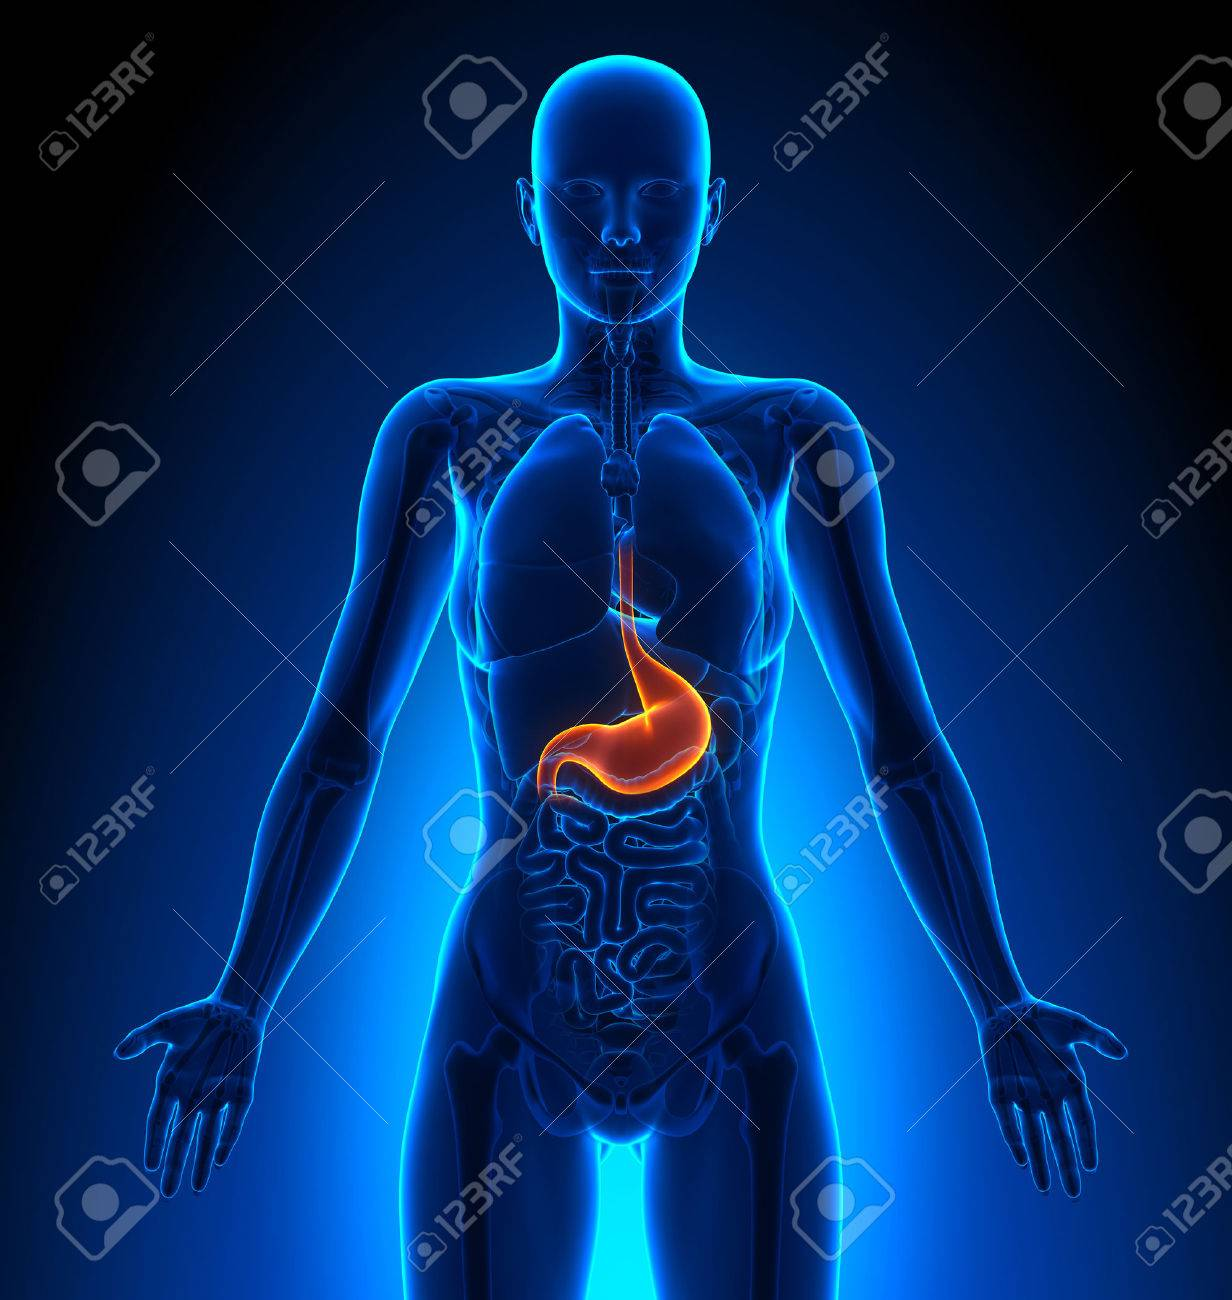 Stomach Female Organs Human Anatomy Stock Photo Picture And